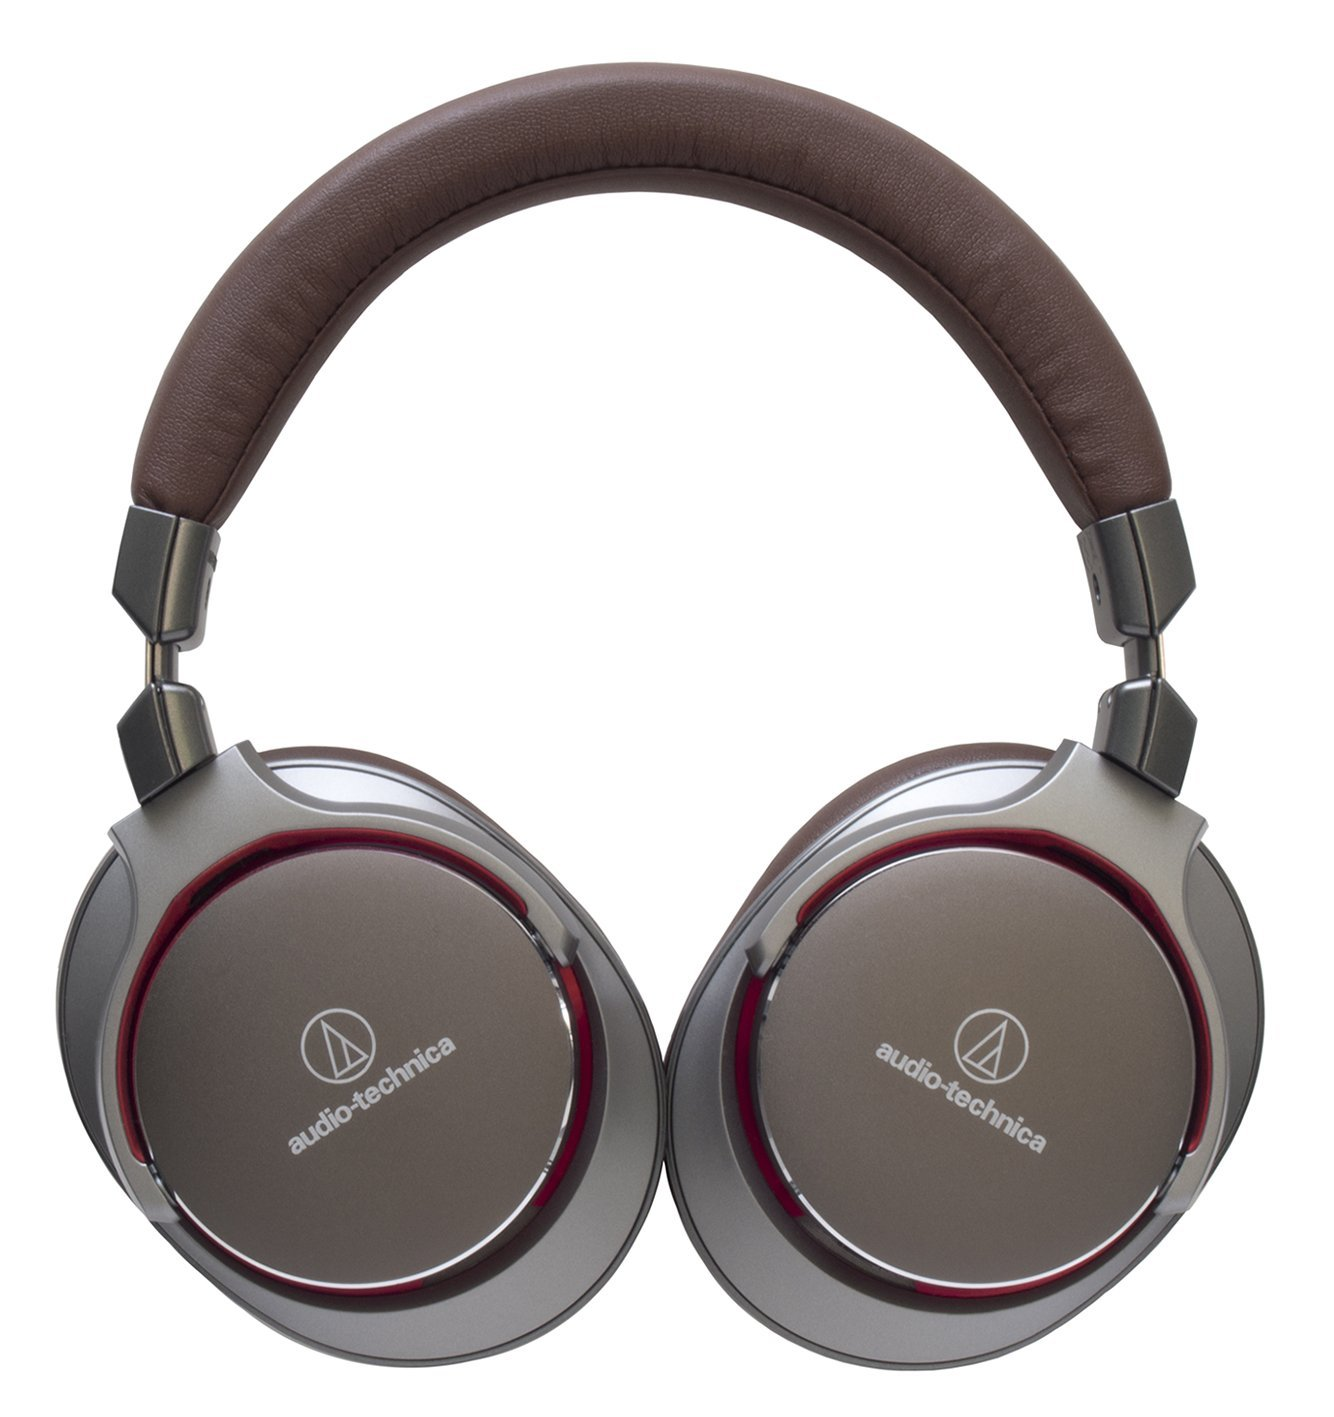 Audio-Technica ATH-MSR7 price